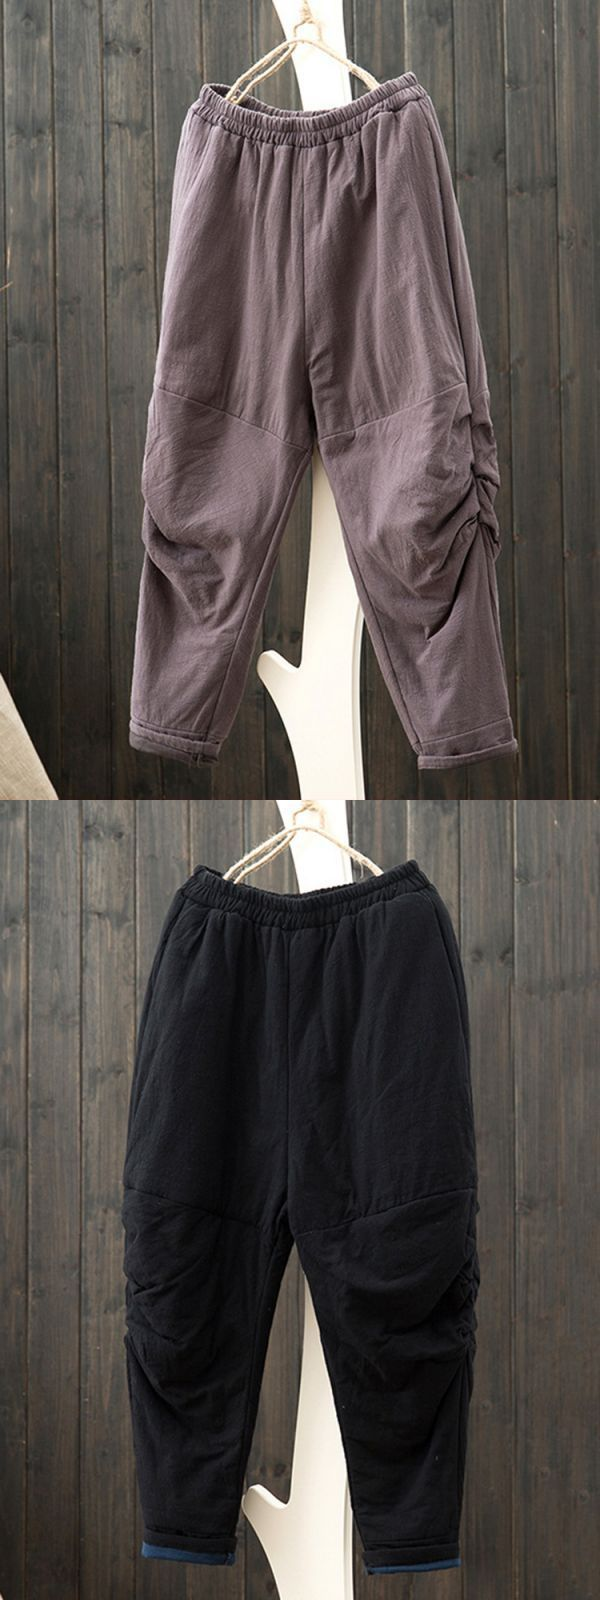 Casual loose solid elastic waist women harem pants types of trousers and pants #perbedaan #trousers #dan #pants #trousers #and #pants #difference #trousers #pants #jeans #trousers #pants #waistband